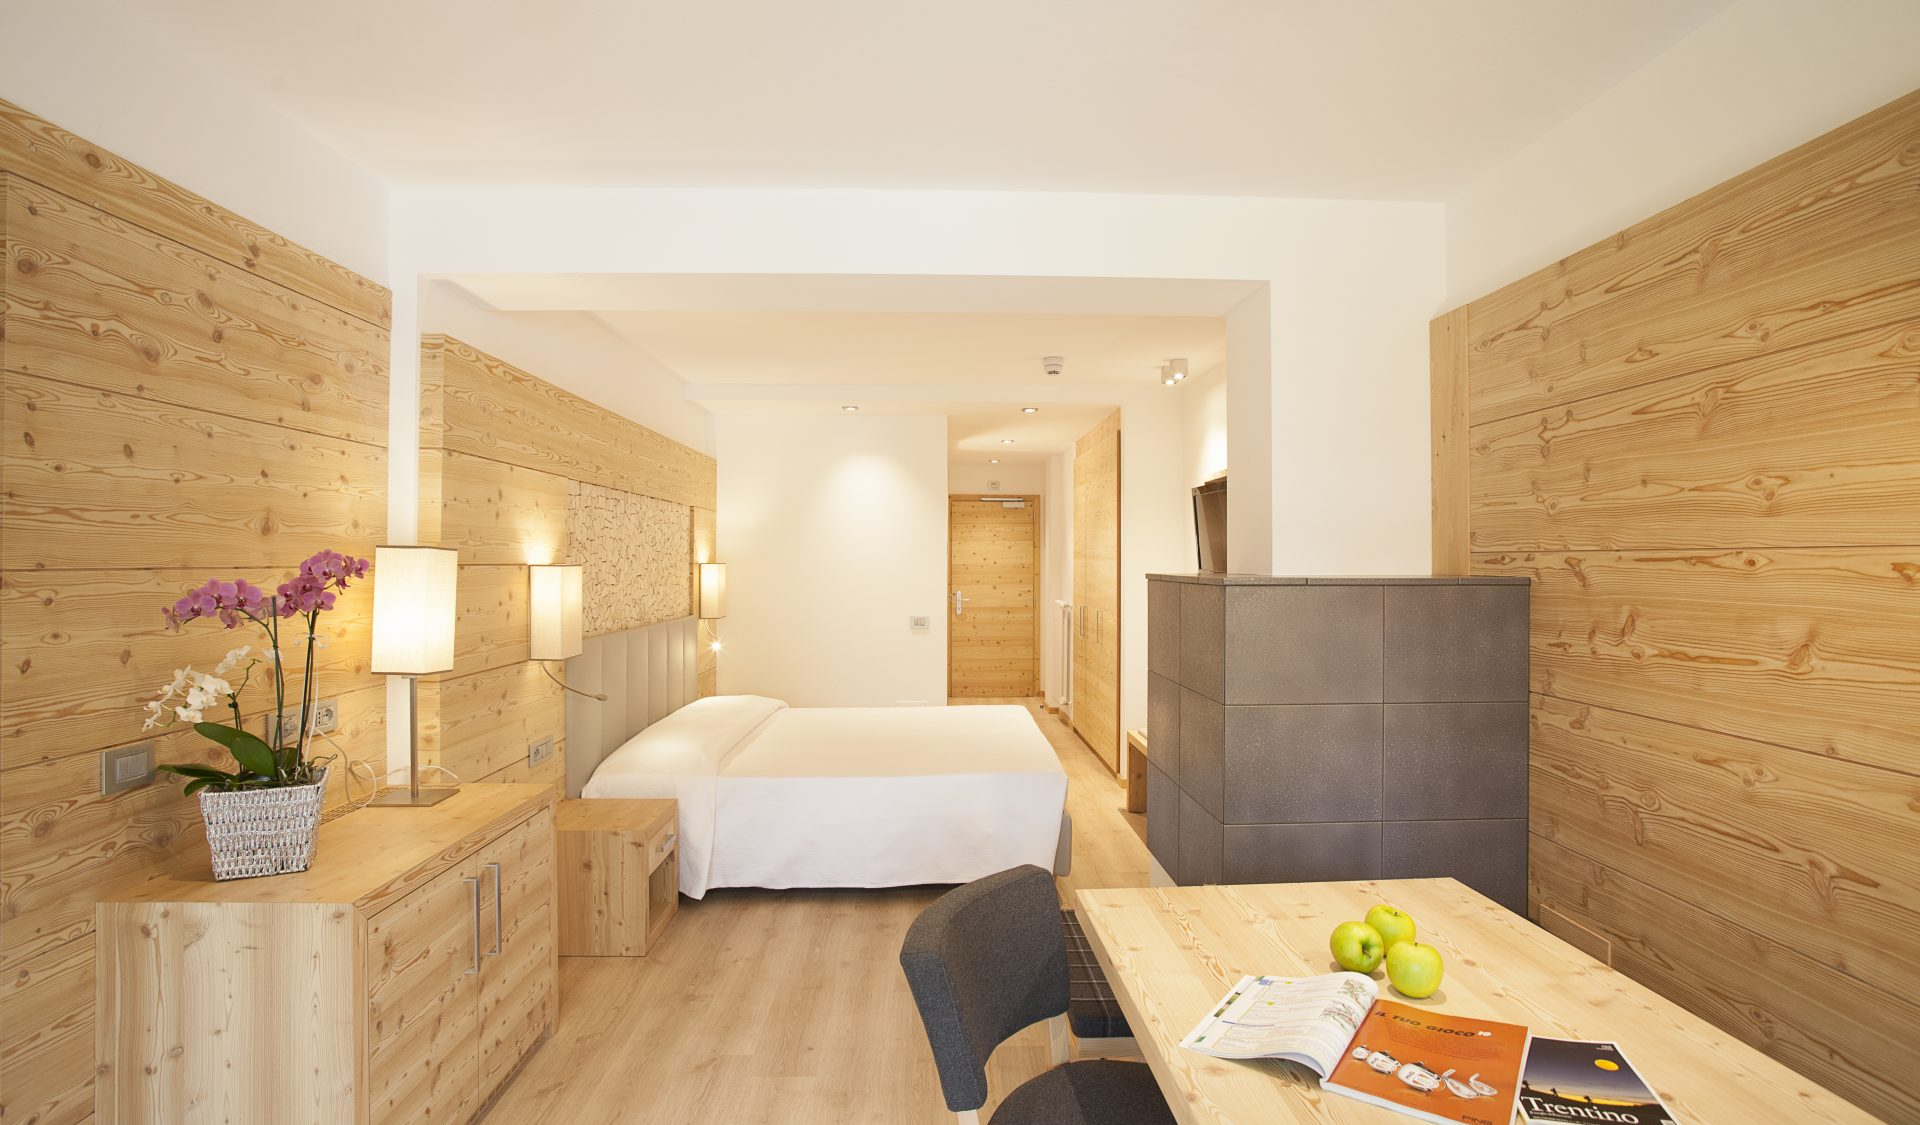 Suite Hotel Europeo in Pinzolo